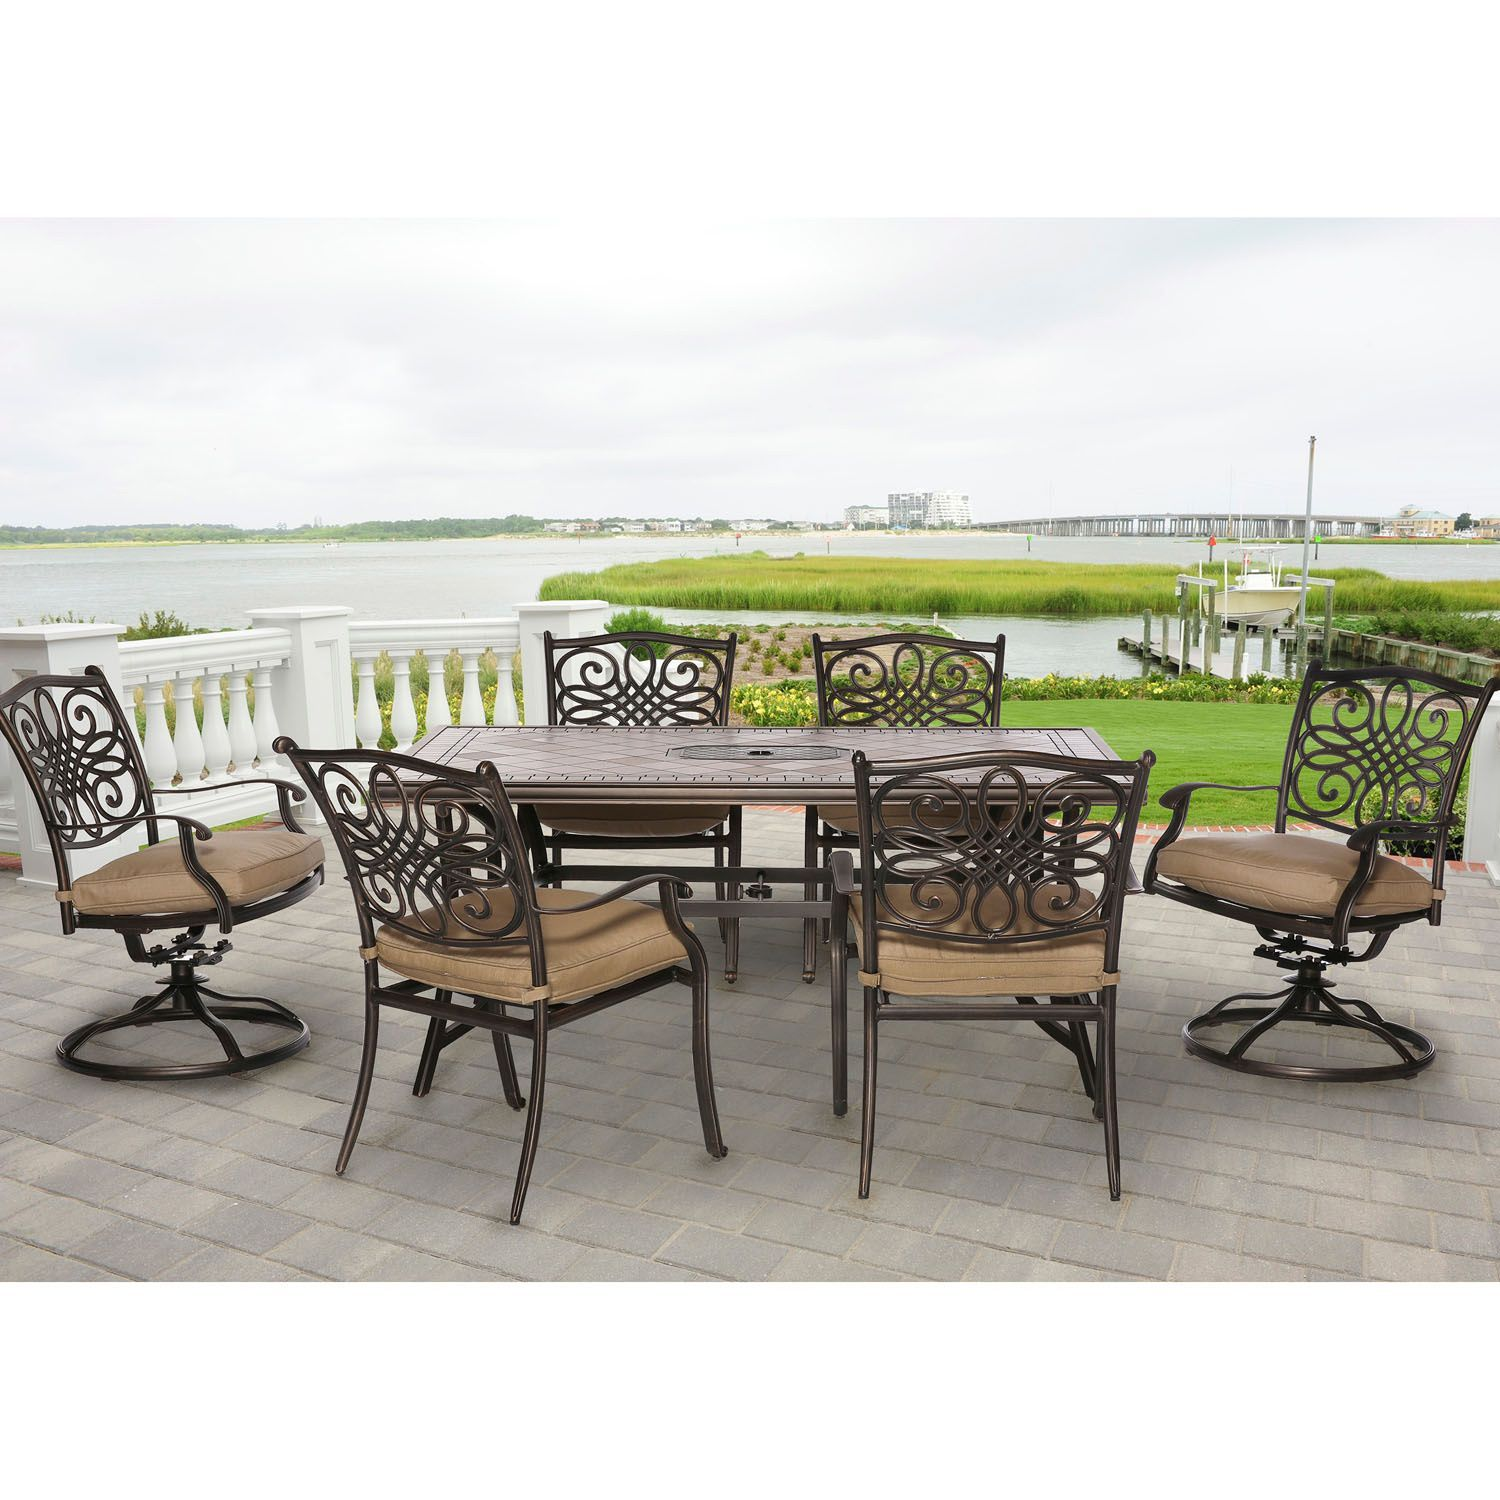 Hanover Outdoor Monaco 7 piece Dining Set Tan Size 7 Piece Sets